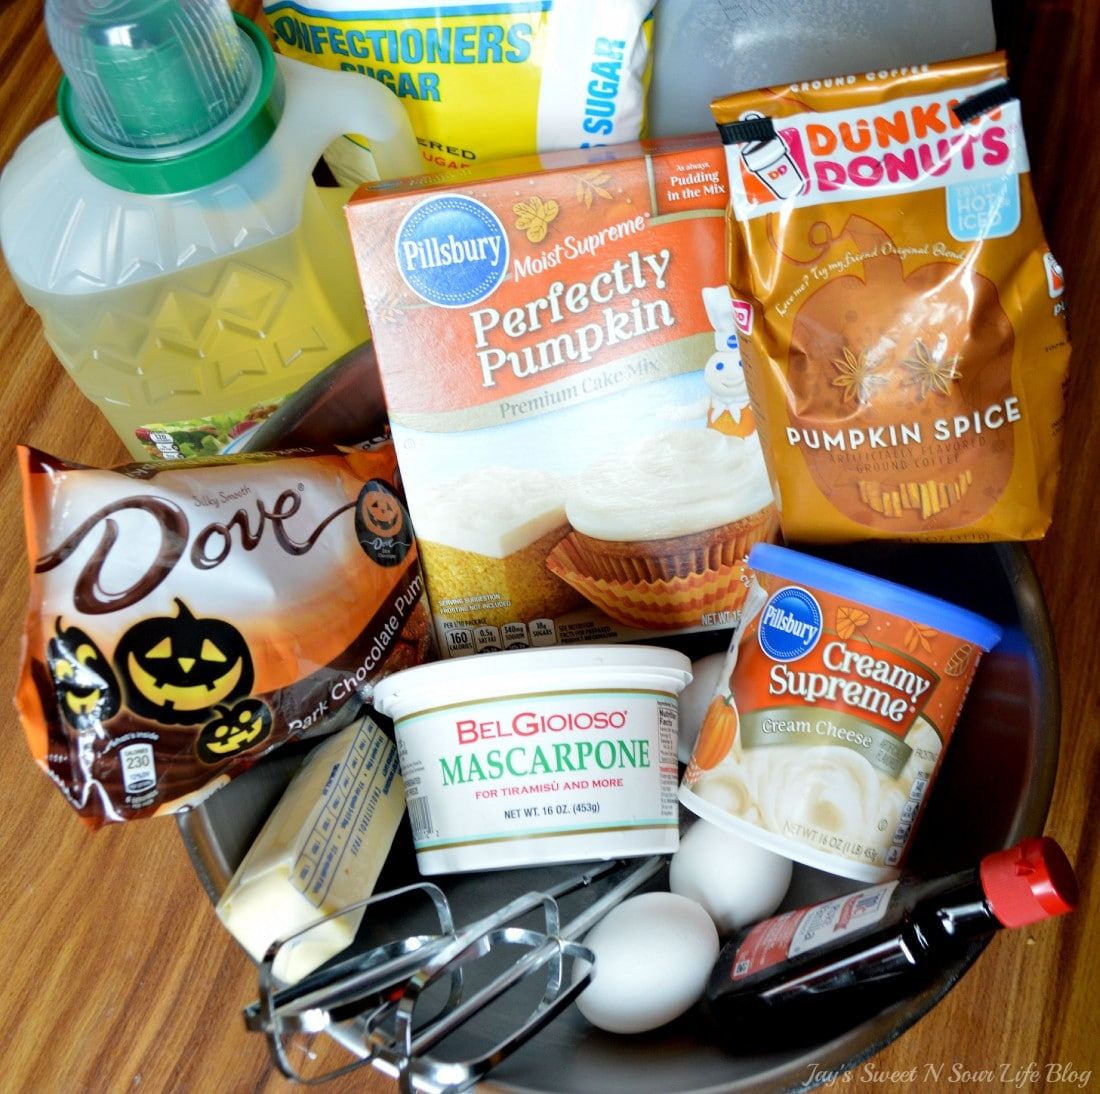 Pumpkin Tiramisu Ingredients. Fall means pumpkin and whats fall without pumpkin flavored desserts. Enjoy a slice of this amazingly easy to make Pumpkin Tiramisu with your morning cup of coffee.